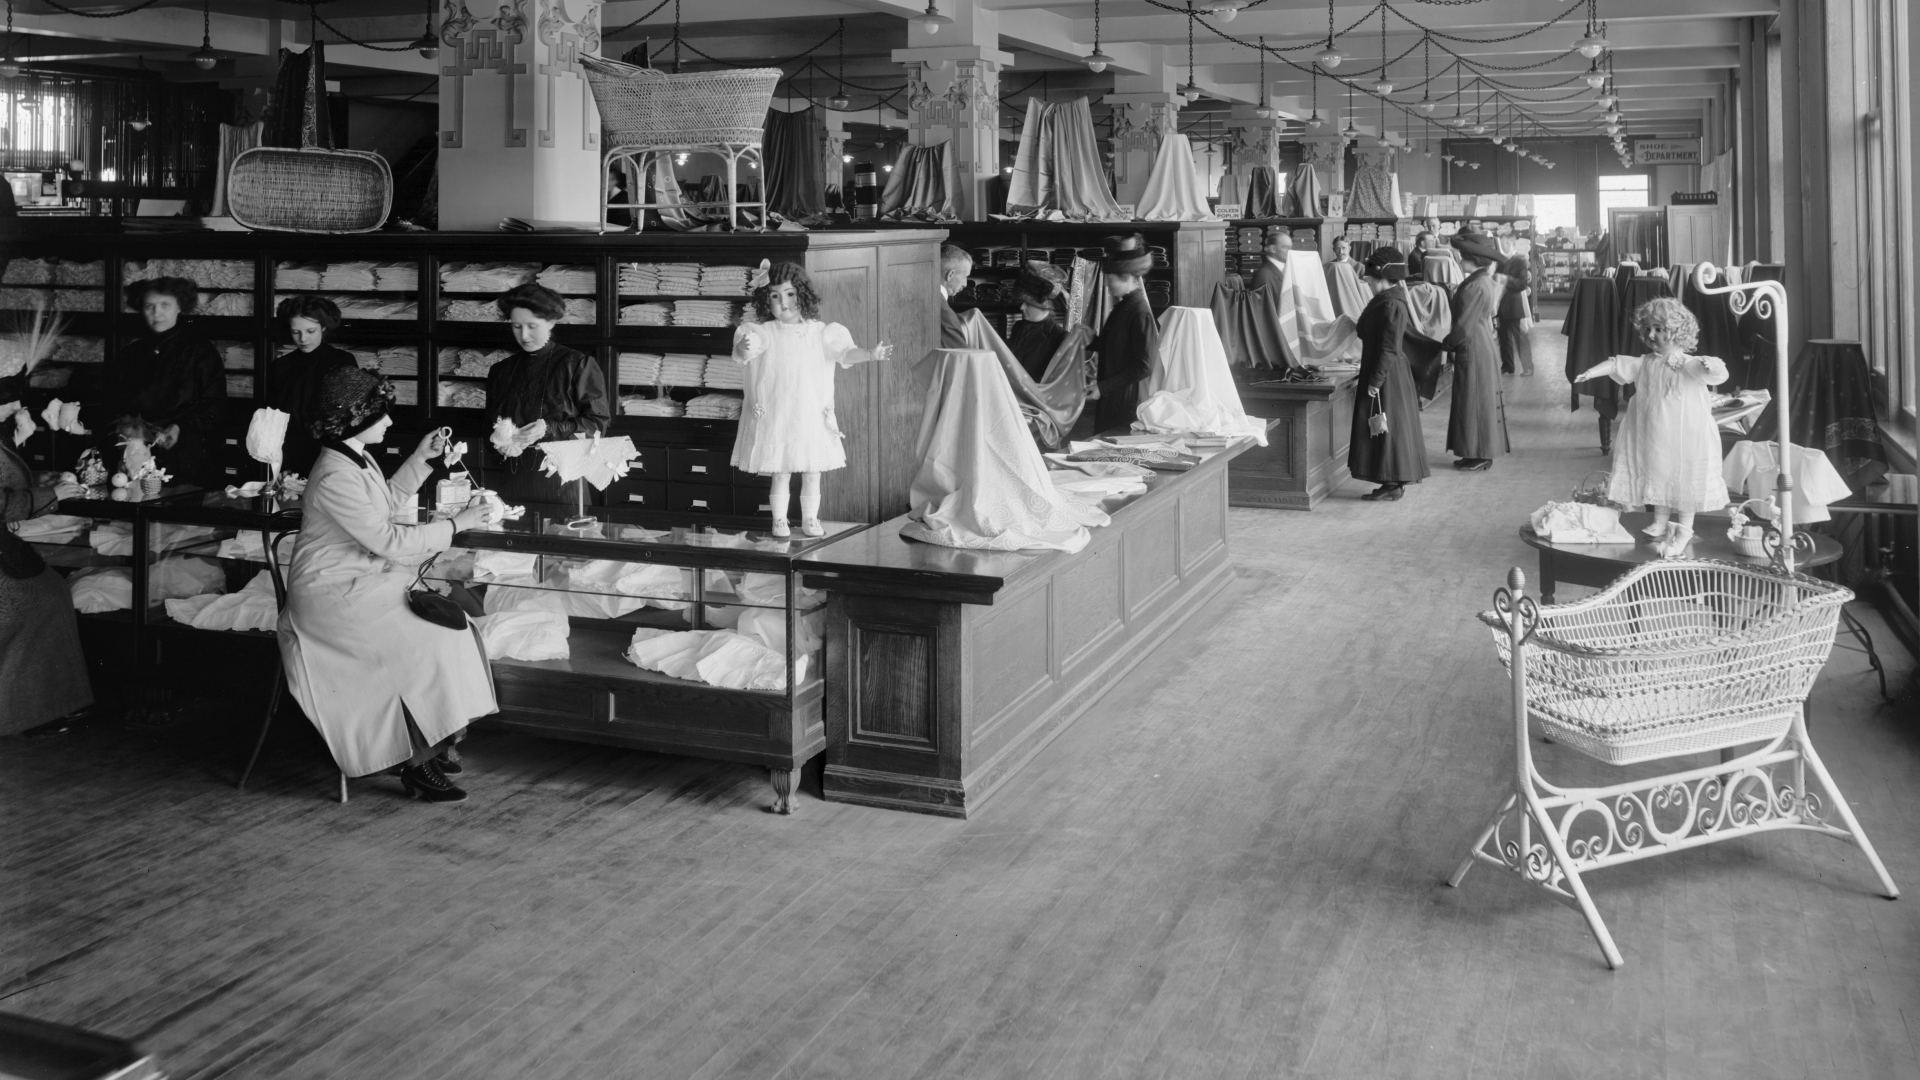 Department Store in Detroit, Michigan, circa 1910. (Credit: Universal History Archive/UIG via Getty Images)